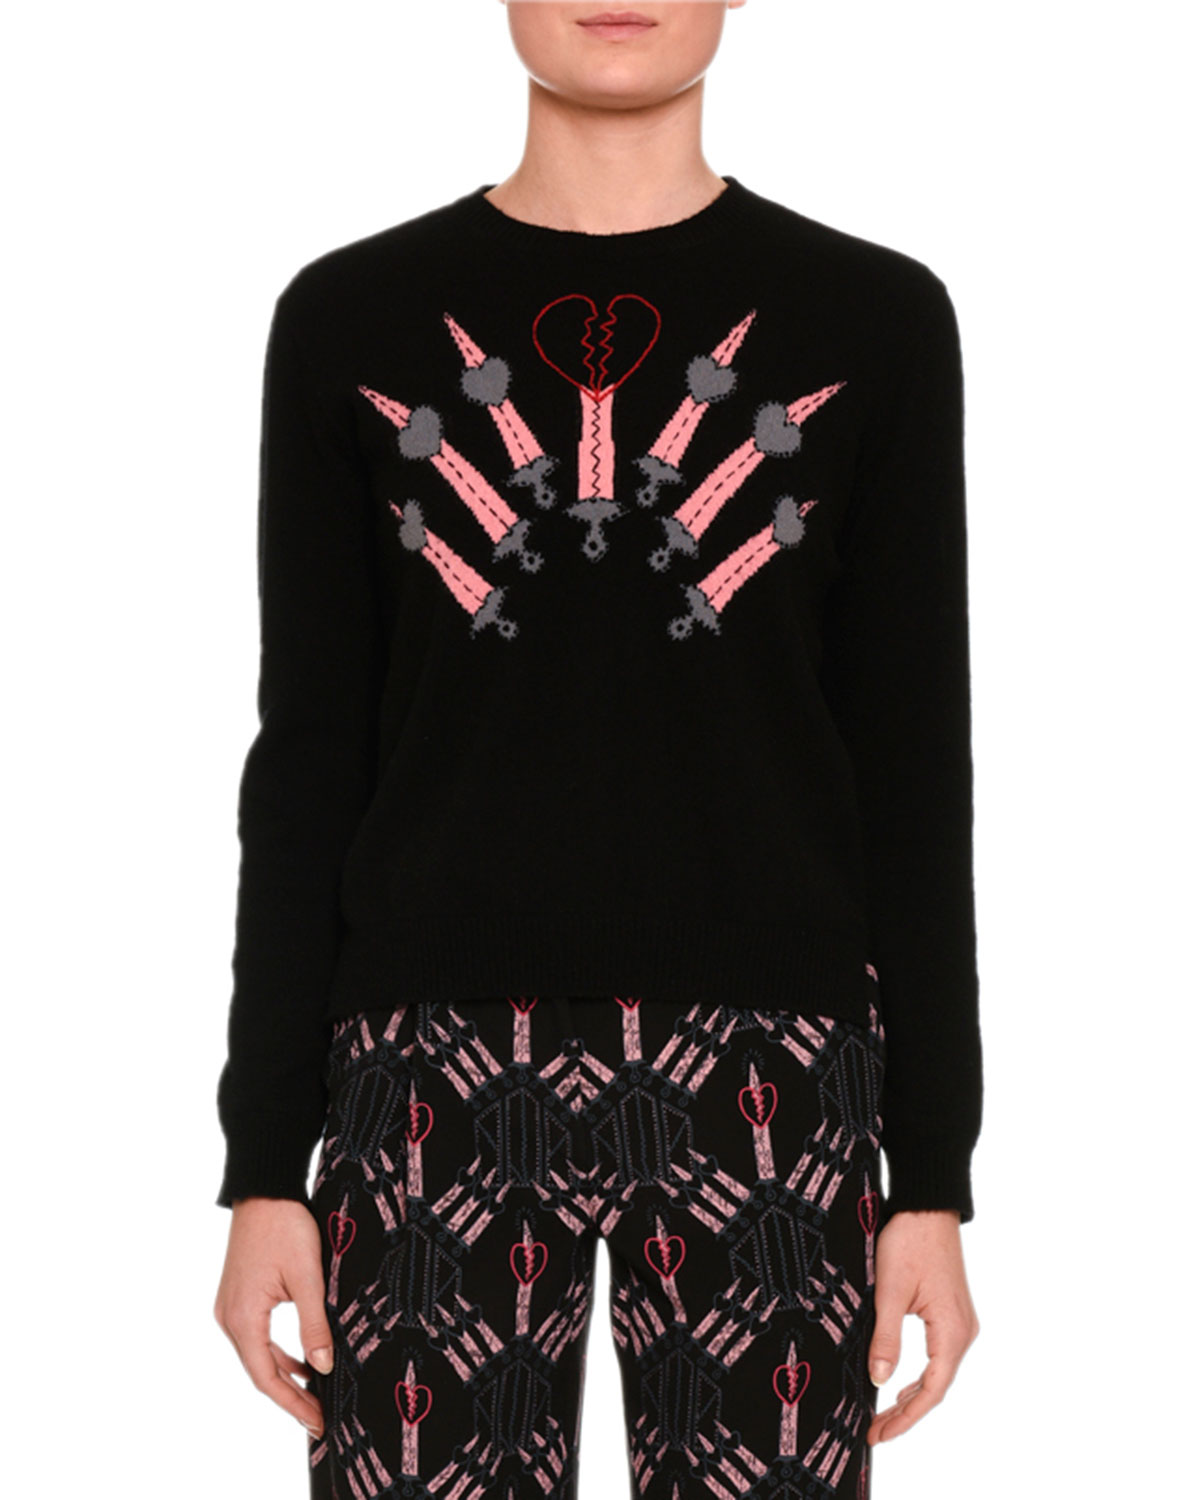 Love Blade Intarsia Crewneck Sweater, Black